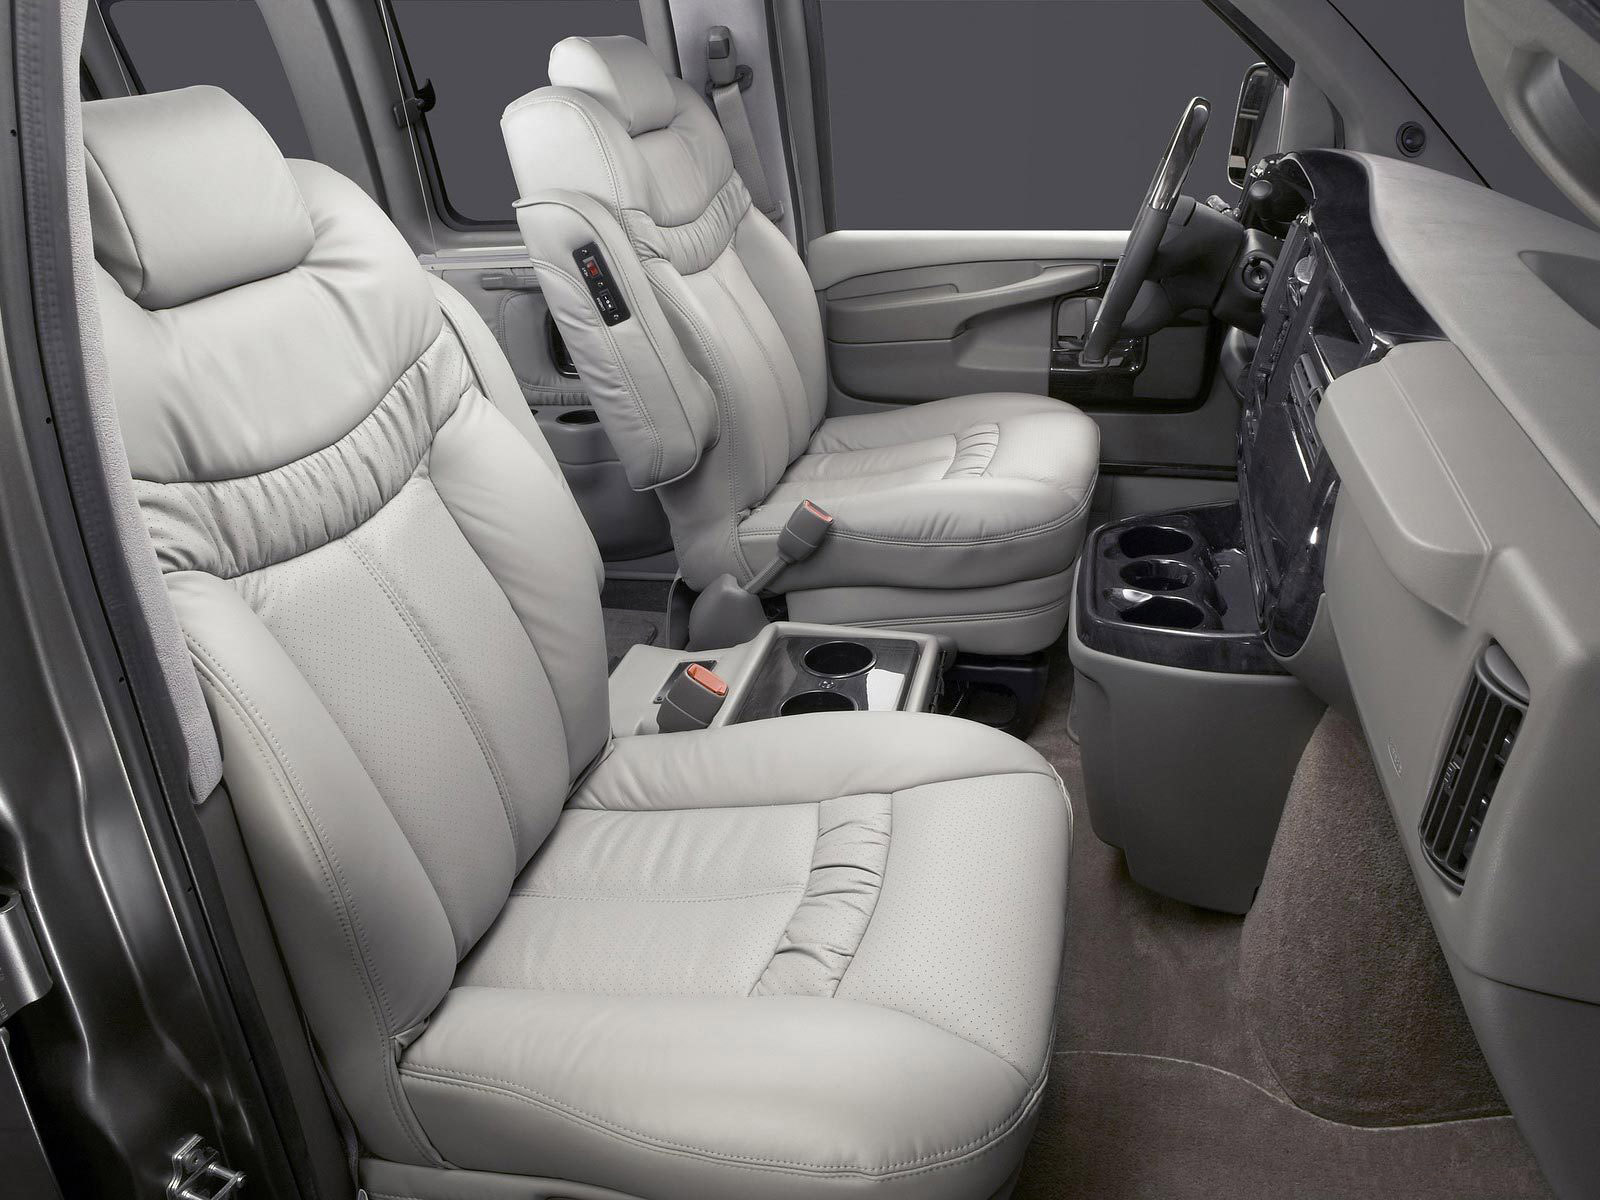 GMC Savana Interior